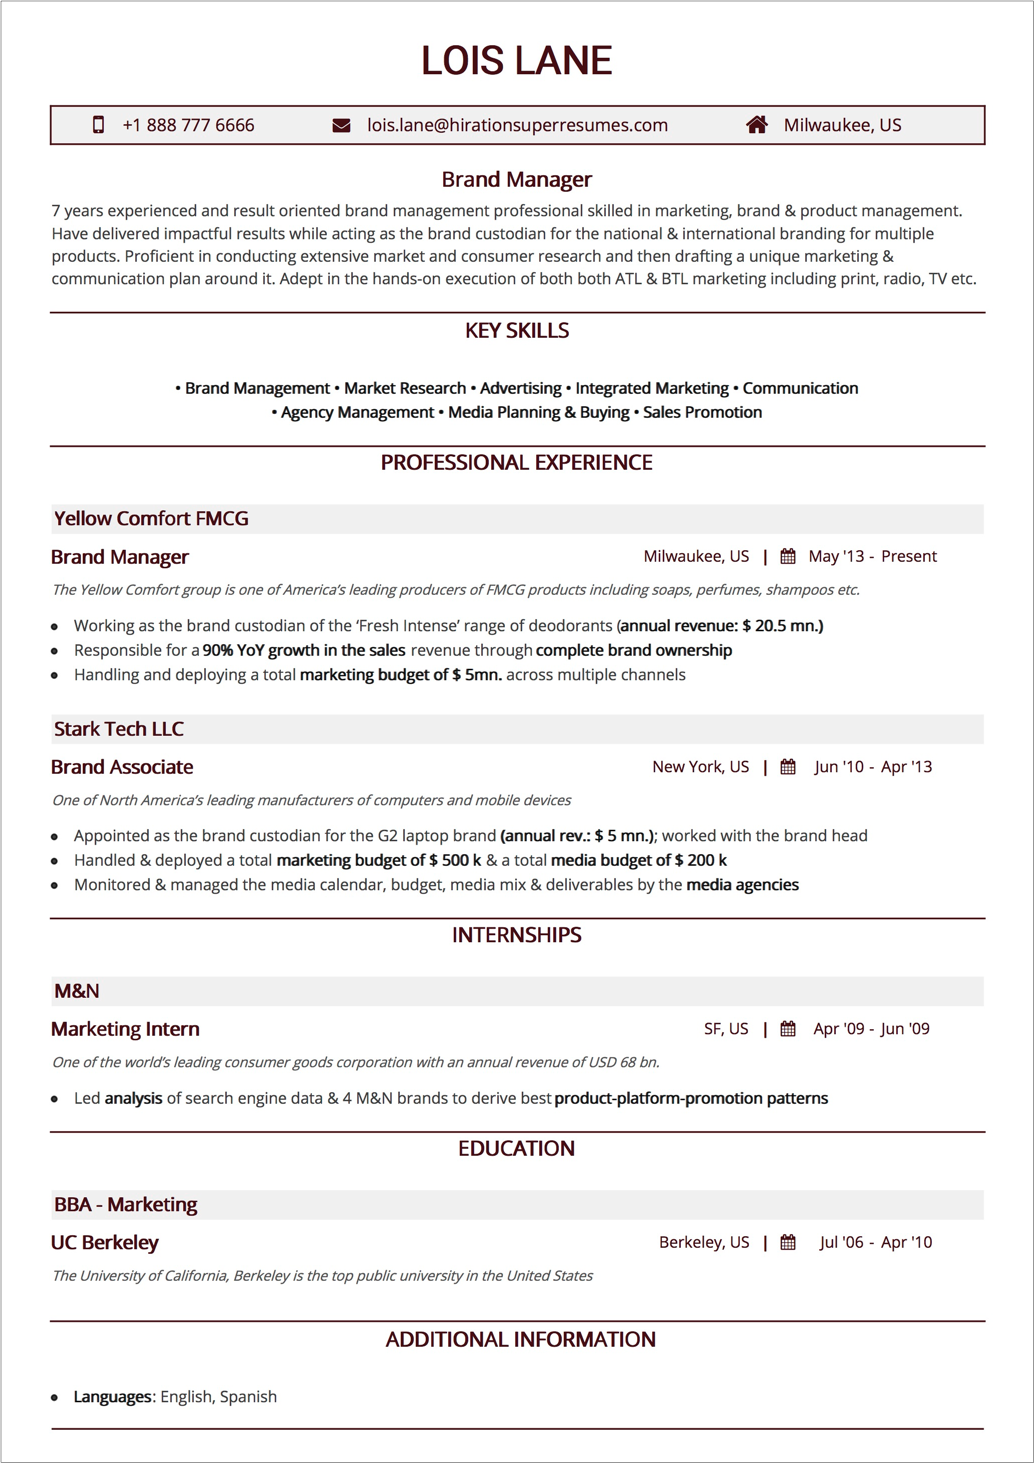 02.-Reverse_chronological_resume_format_business-analyst